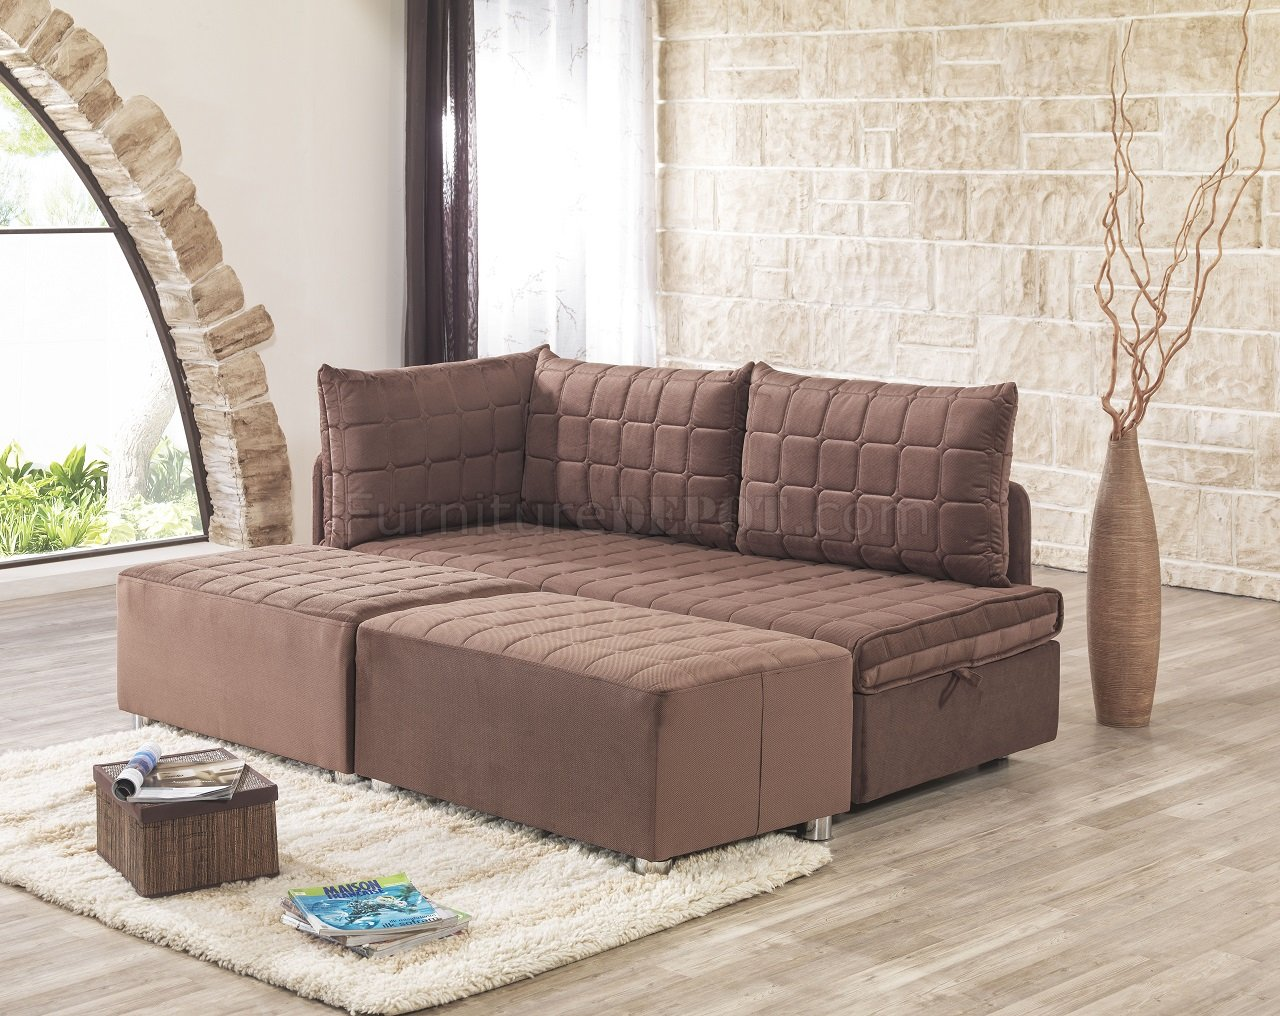 day night sleeper sofa reclining with drink holder and bed in brown fabric by casamode w options